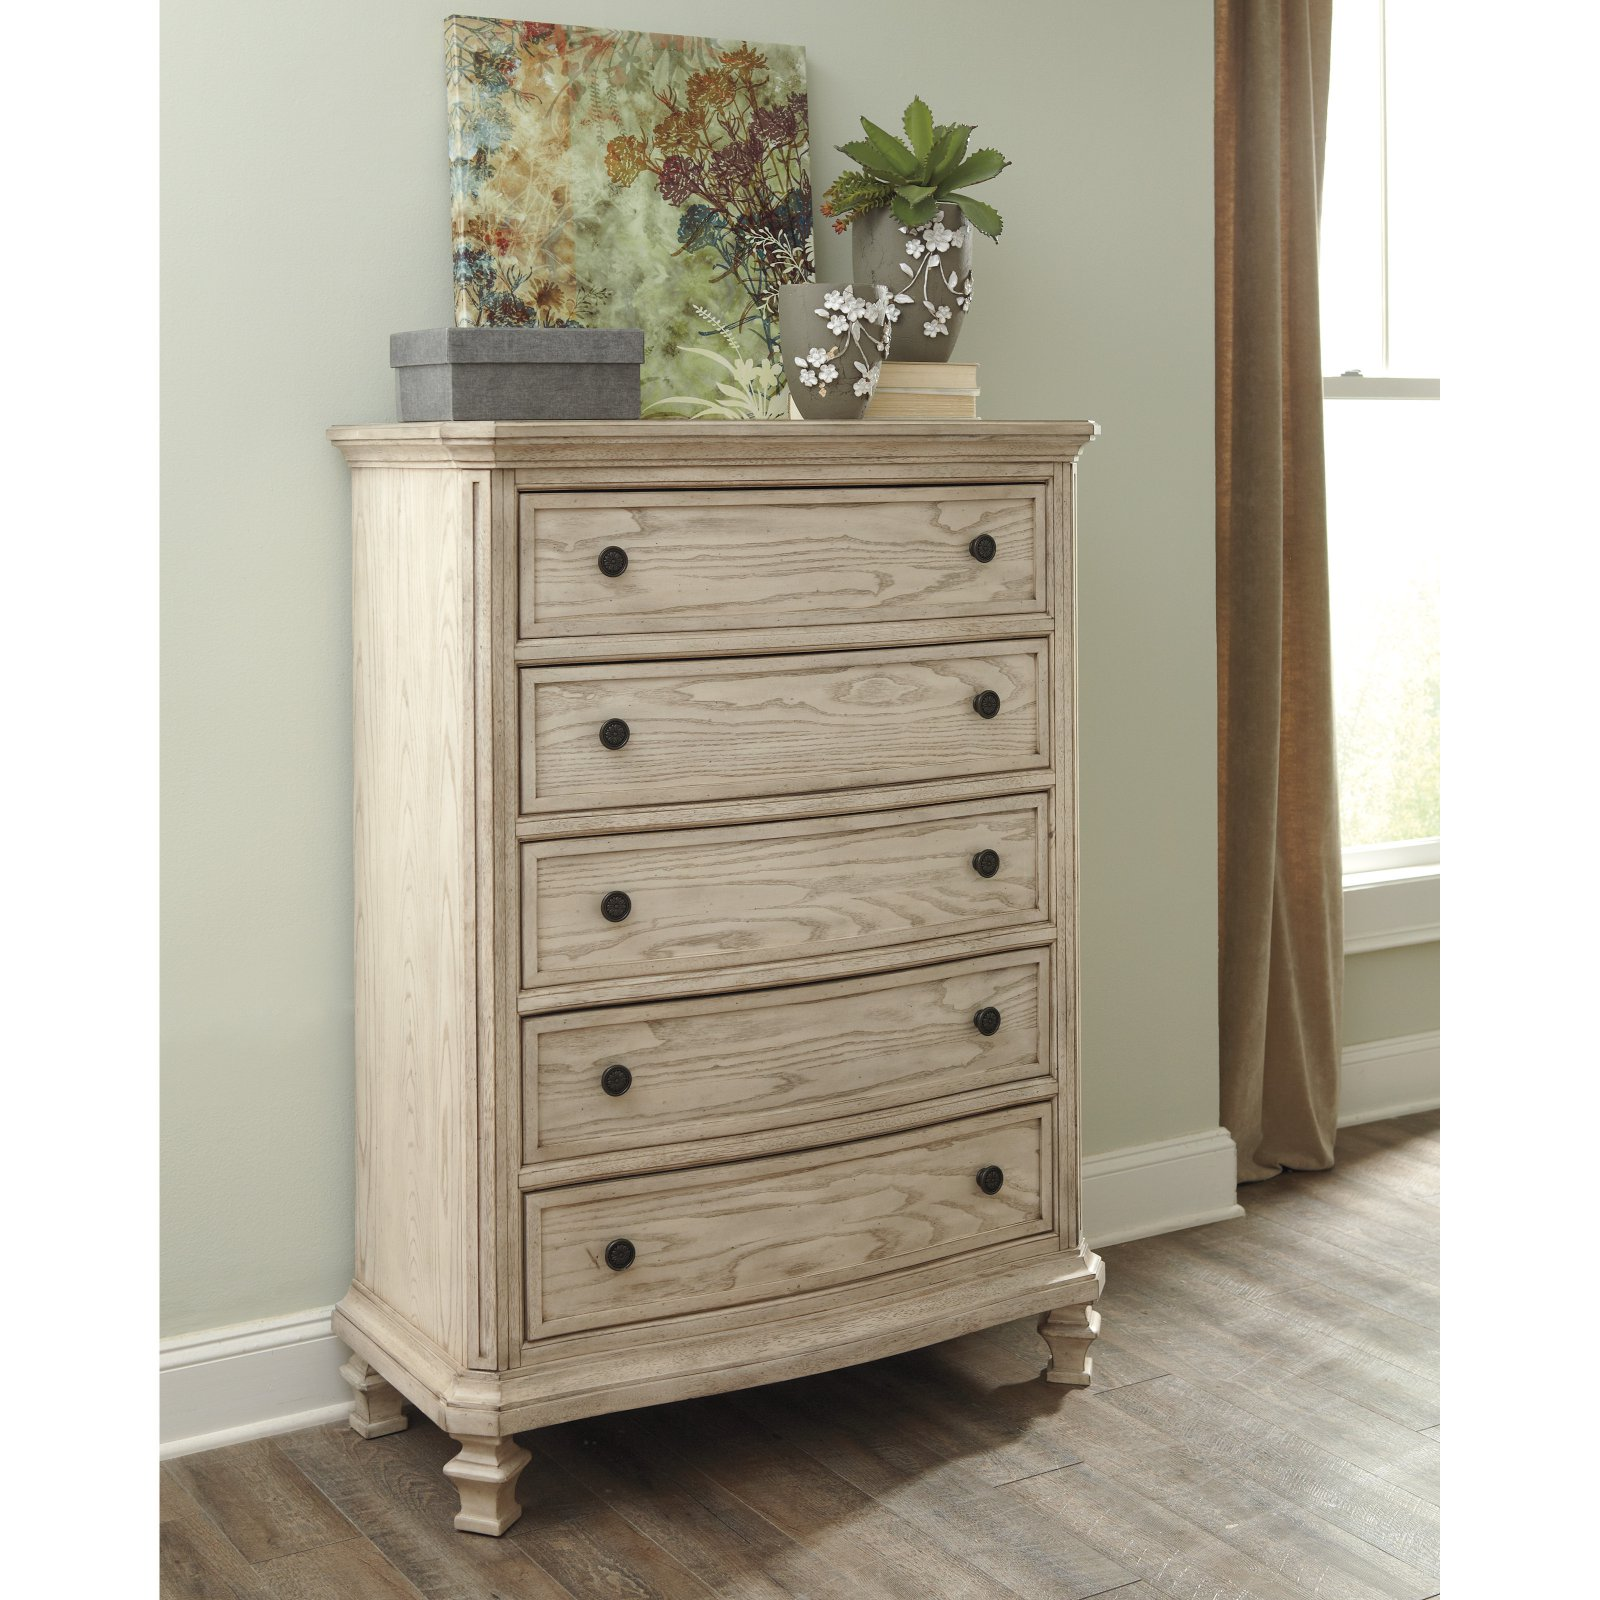 Signature Design by Ashley Demarlos 5 Drawer Chest